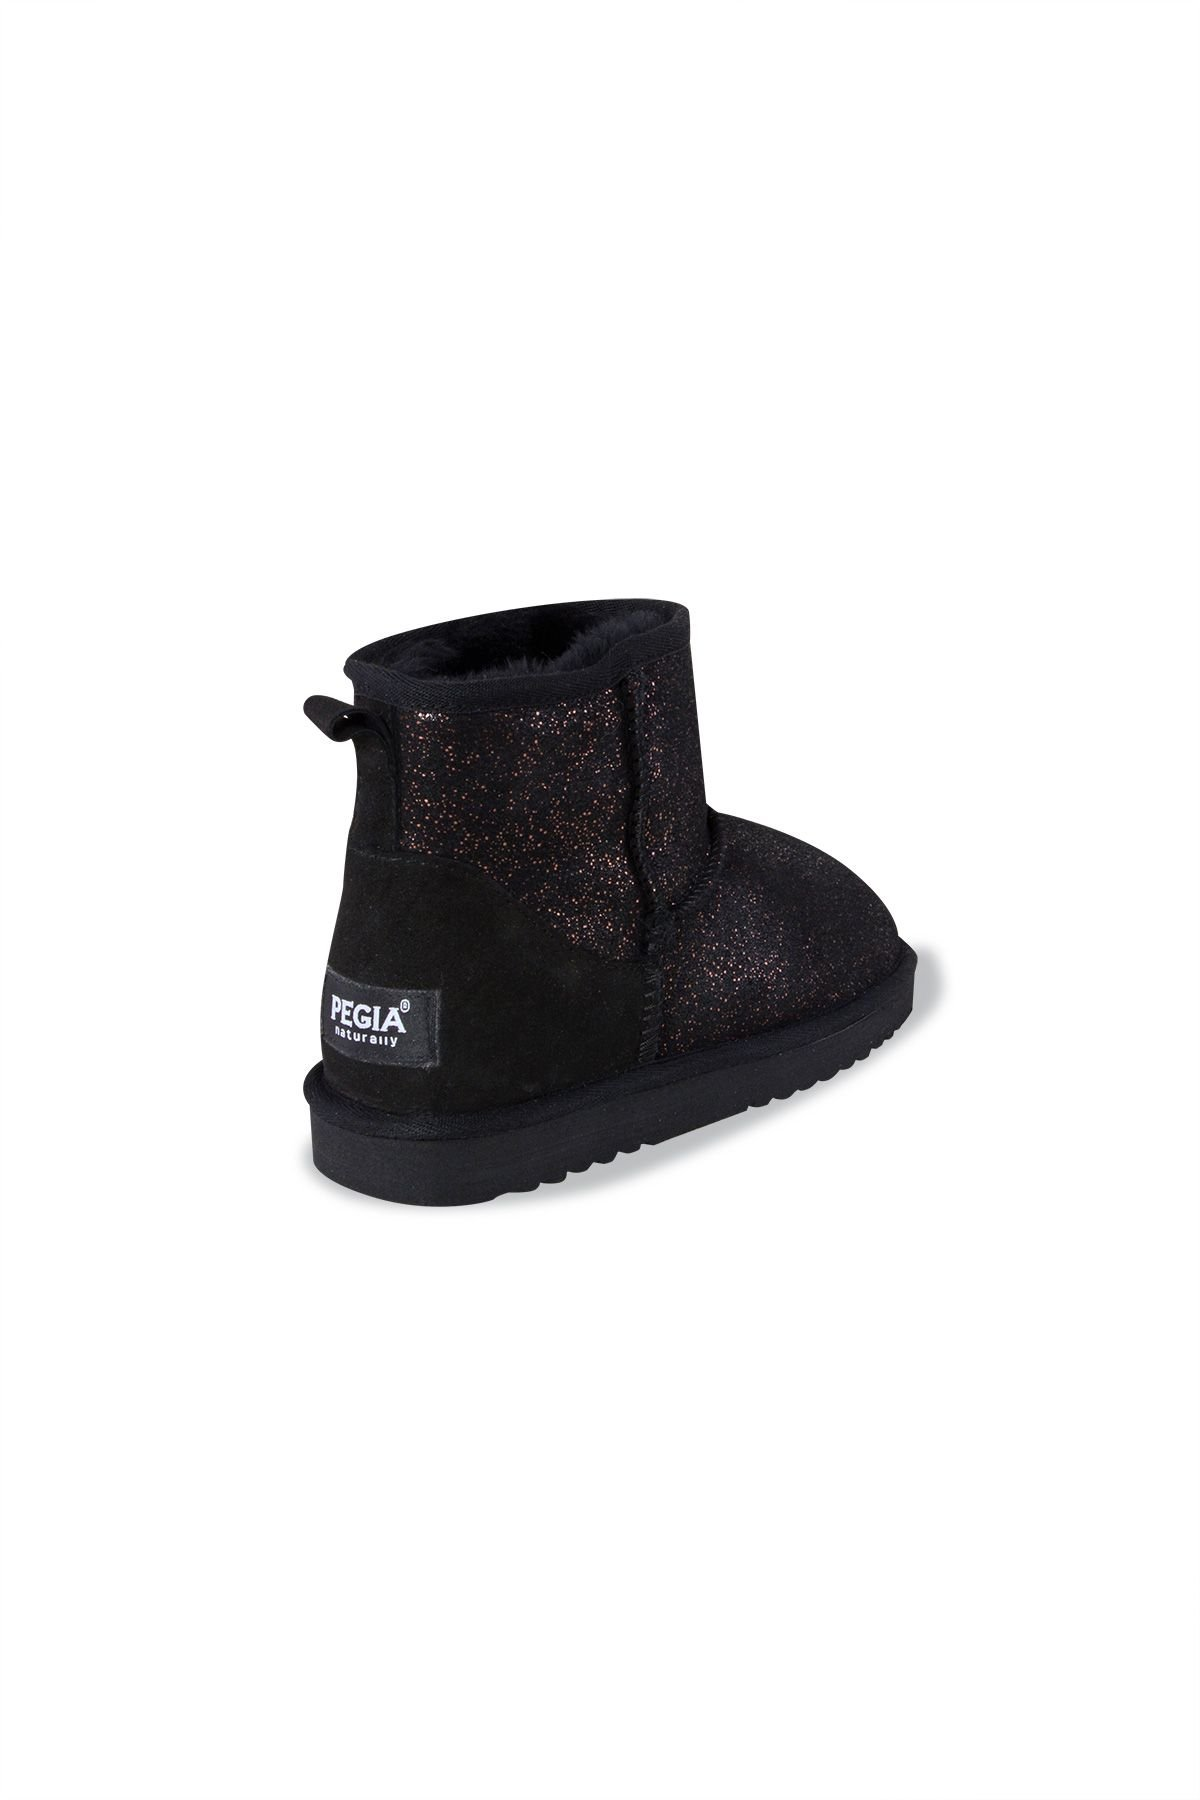 Pegia Genuine Leather & Shearling Glossy Short Women's Boots 980410 Black